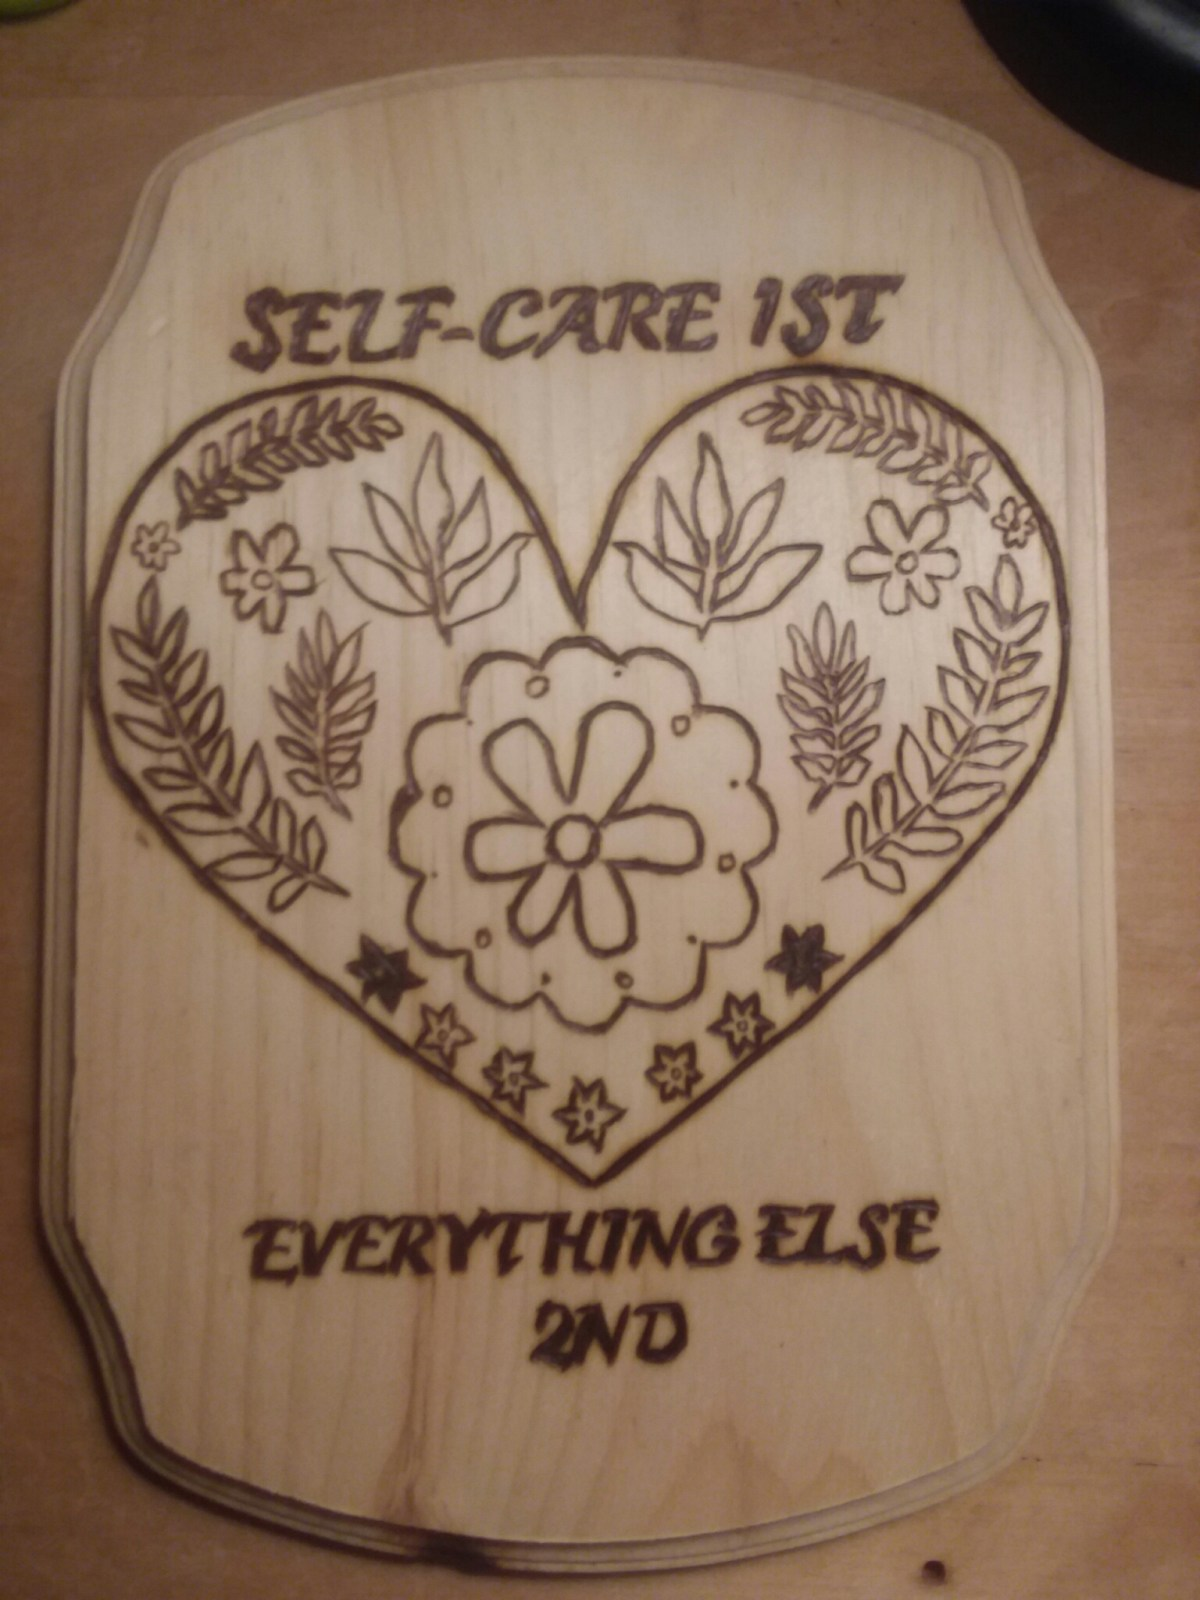 Self-Care wood burnt plaque 9.9.19